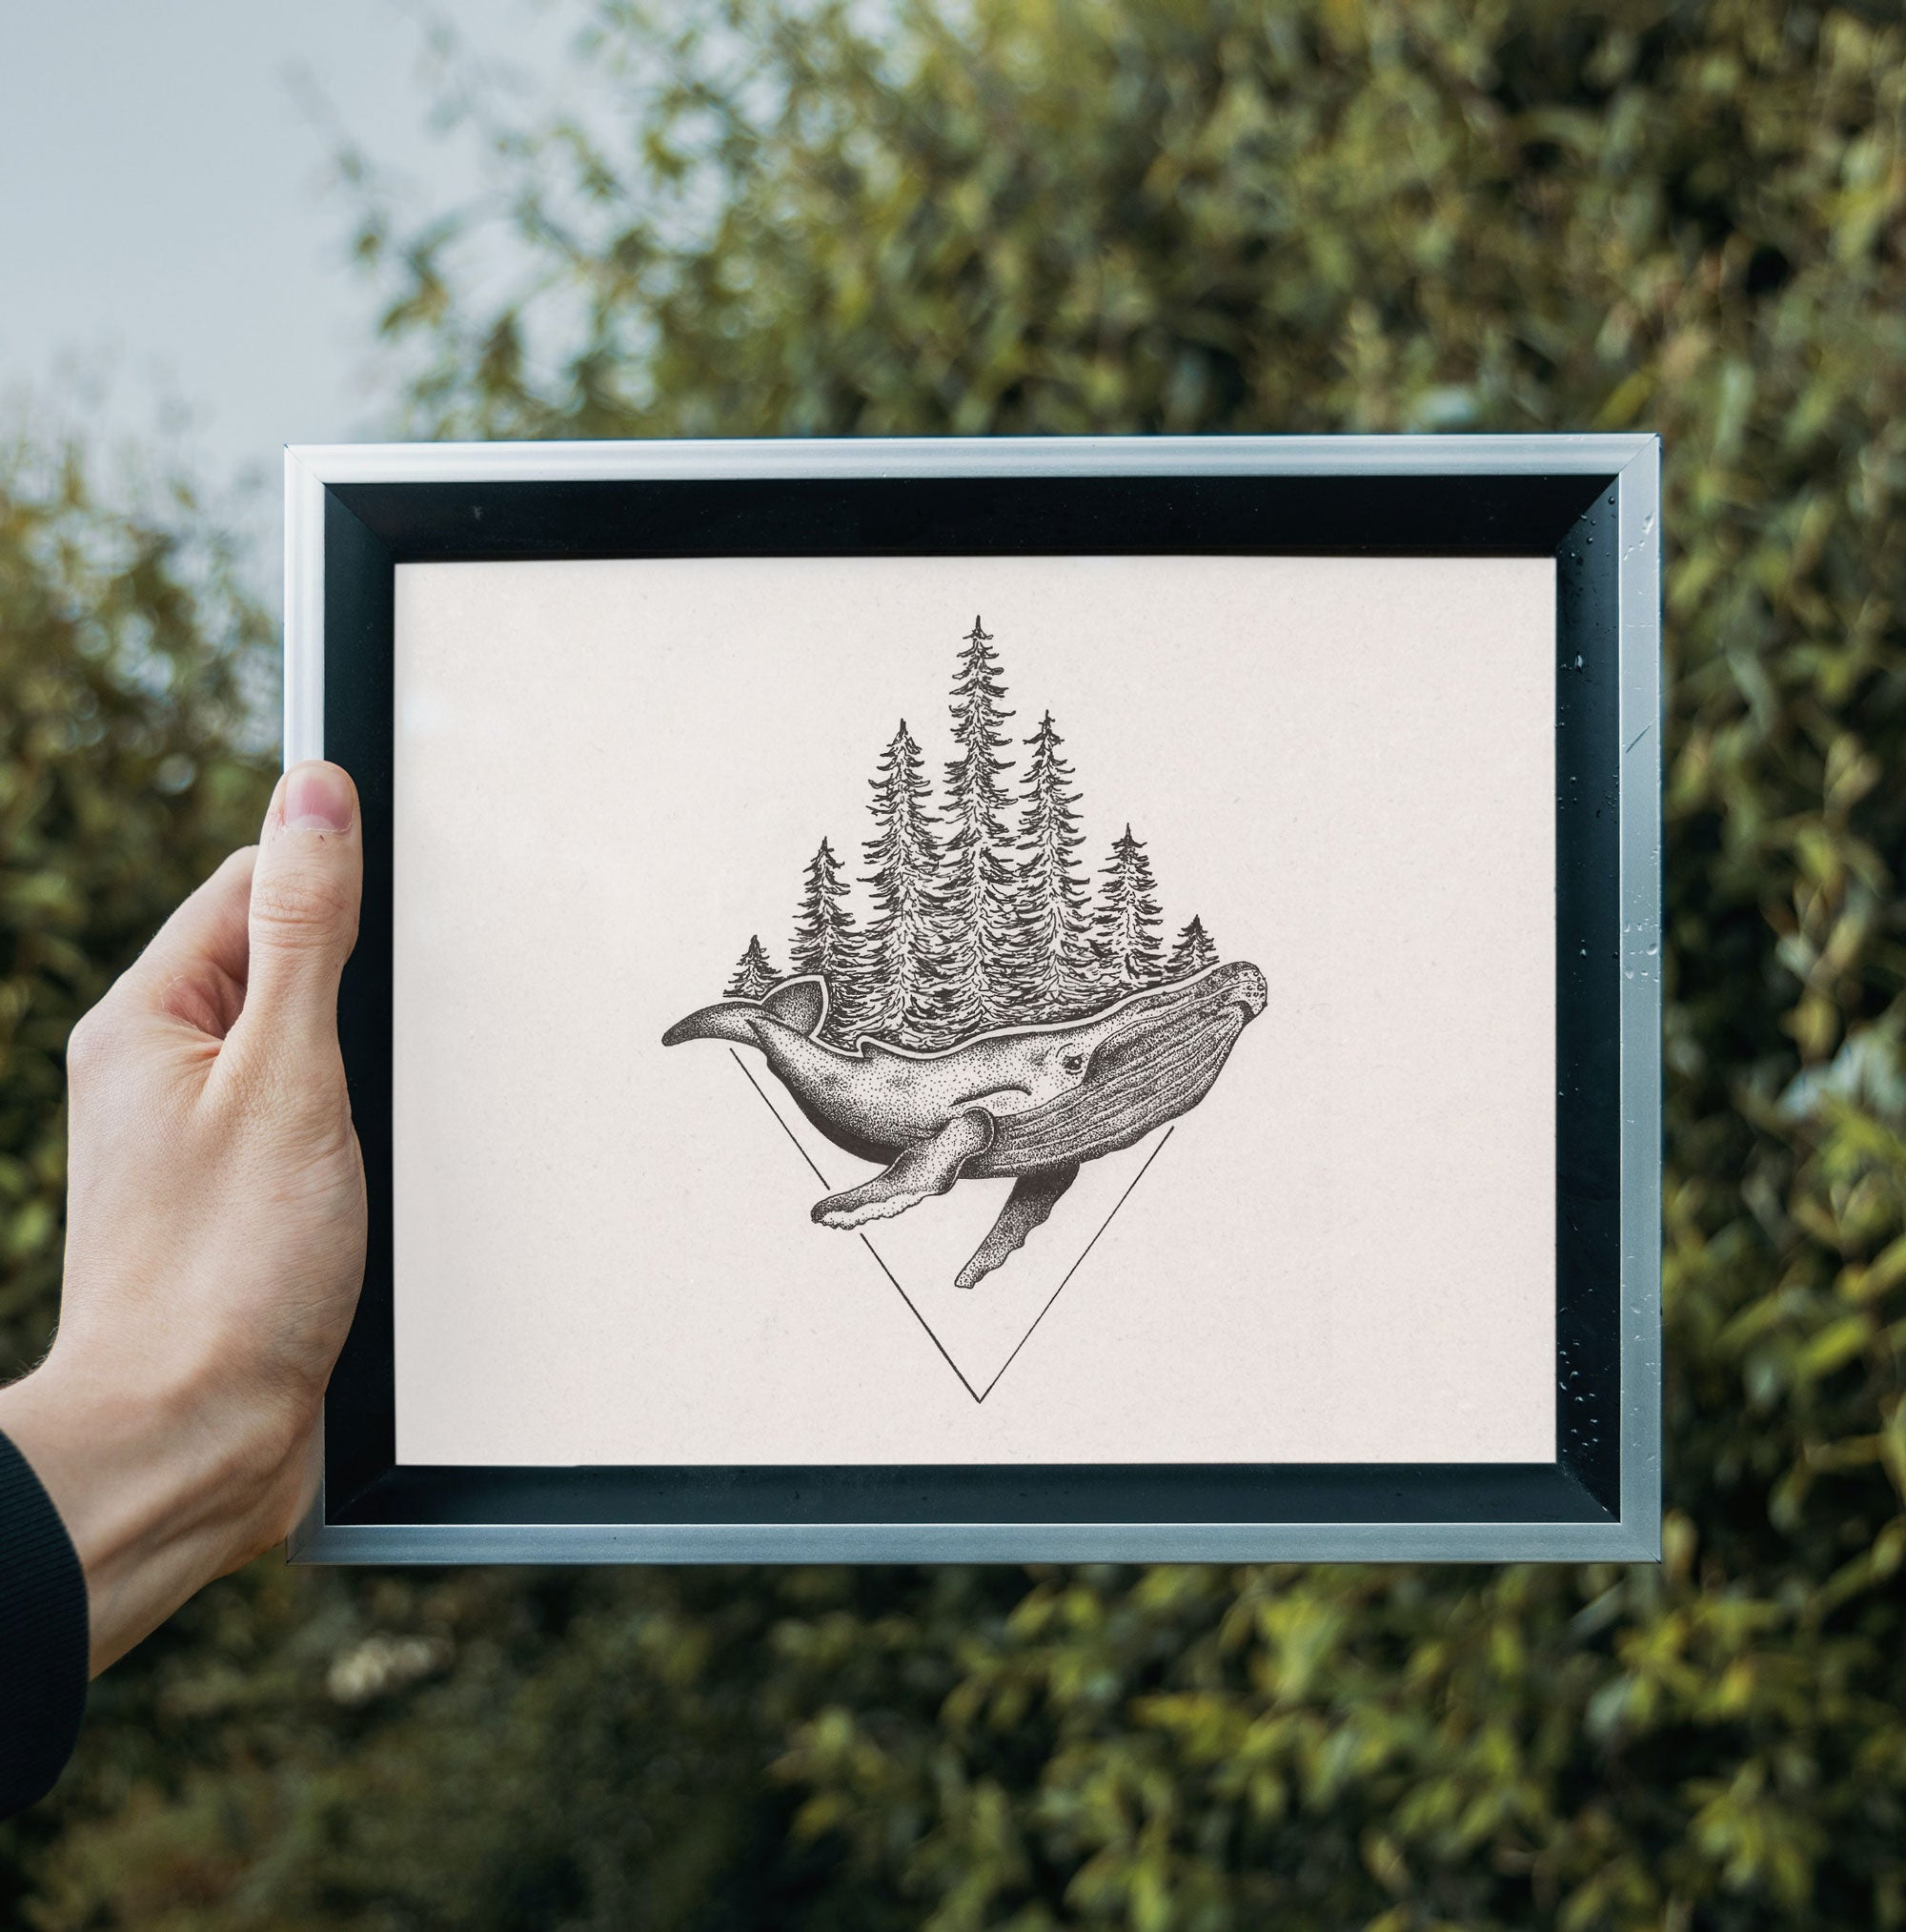 Humpback Whale • Hand Drawn Print - Stokedthebrand. Lifestyle products for outdoor adventures. Made in South Africa